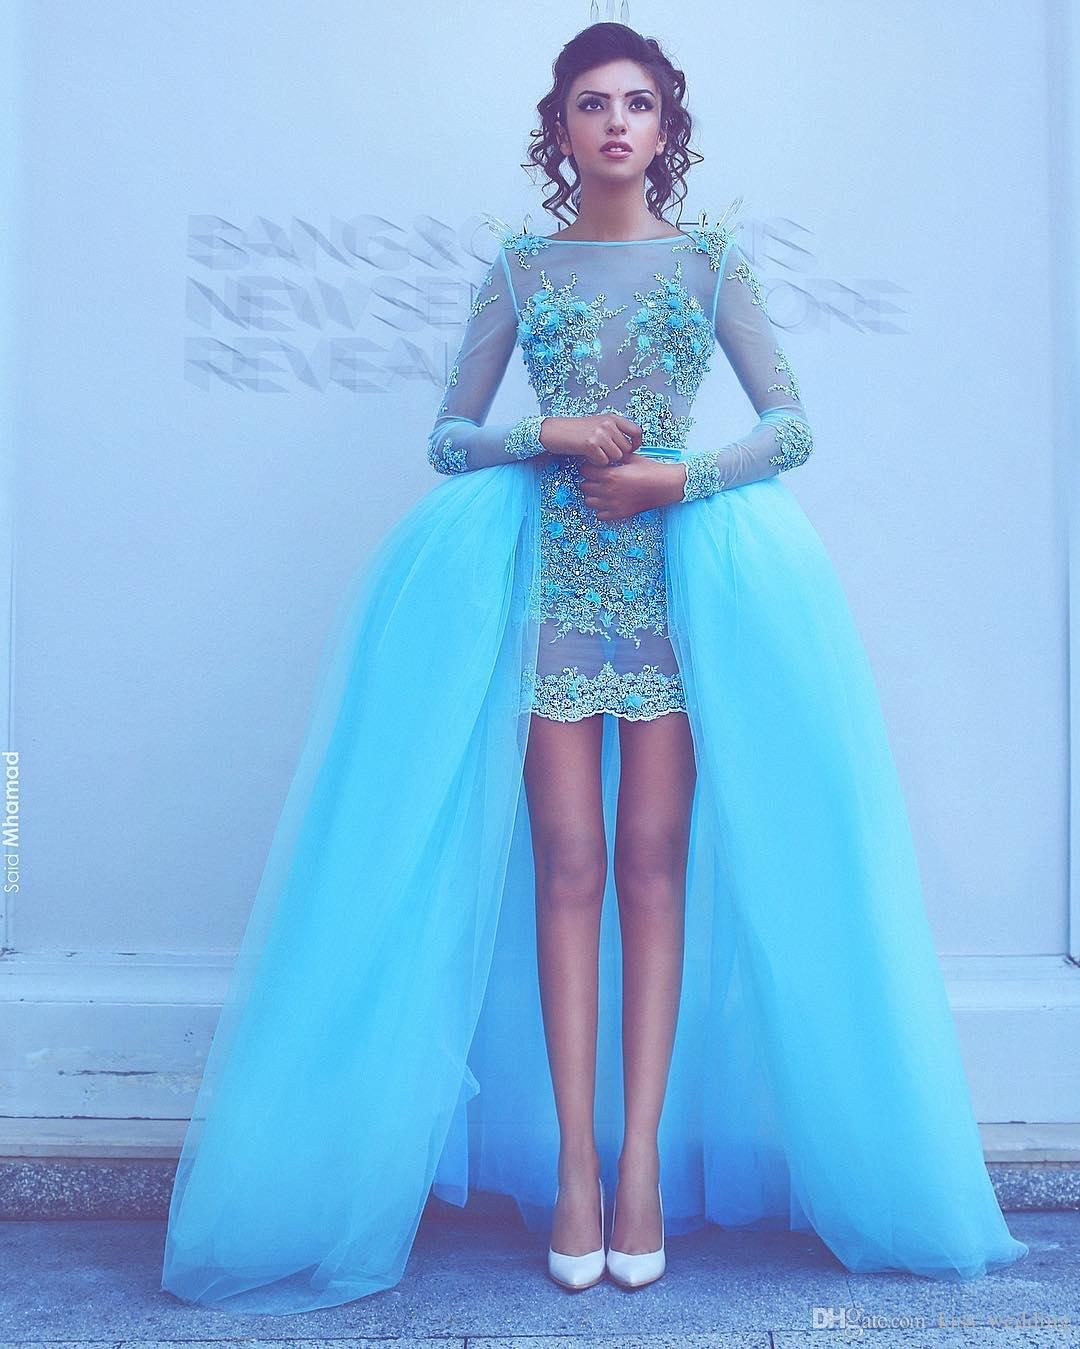 Unique Short Prom Dress Formal Occasion See Through Evening Dresses With Detachable Train Custom Made Tulle Women's Dress For Weddings